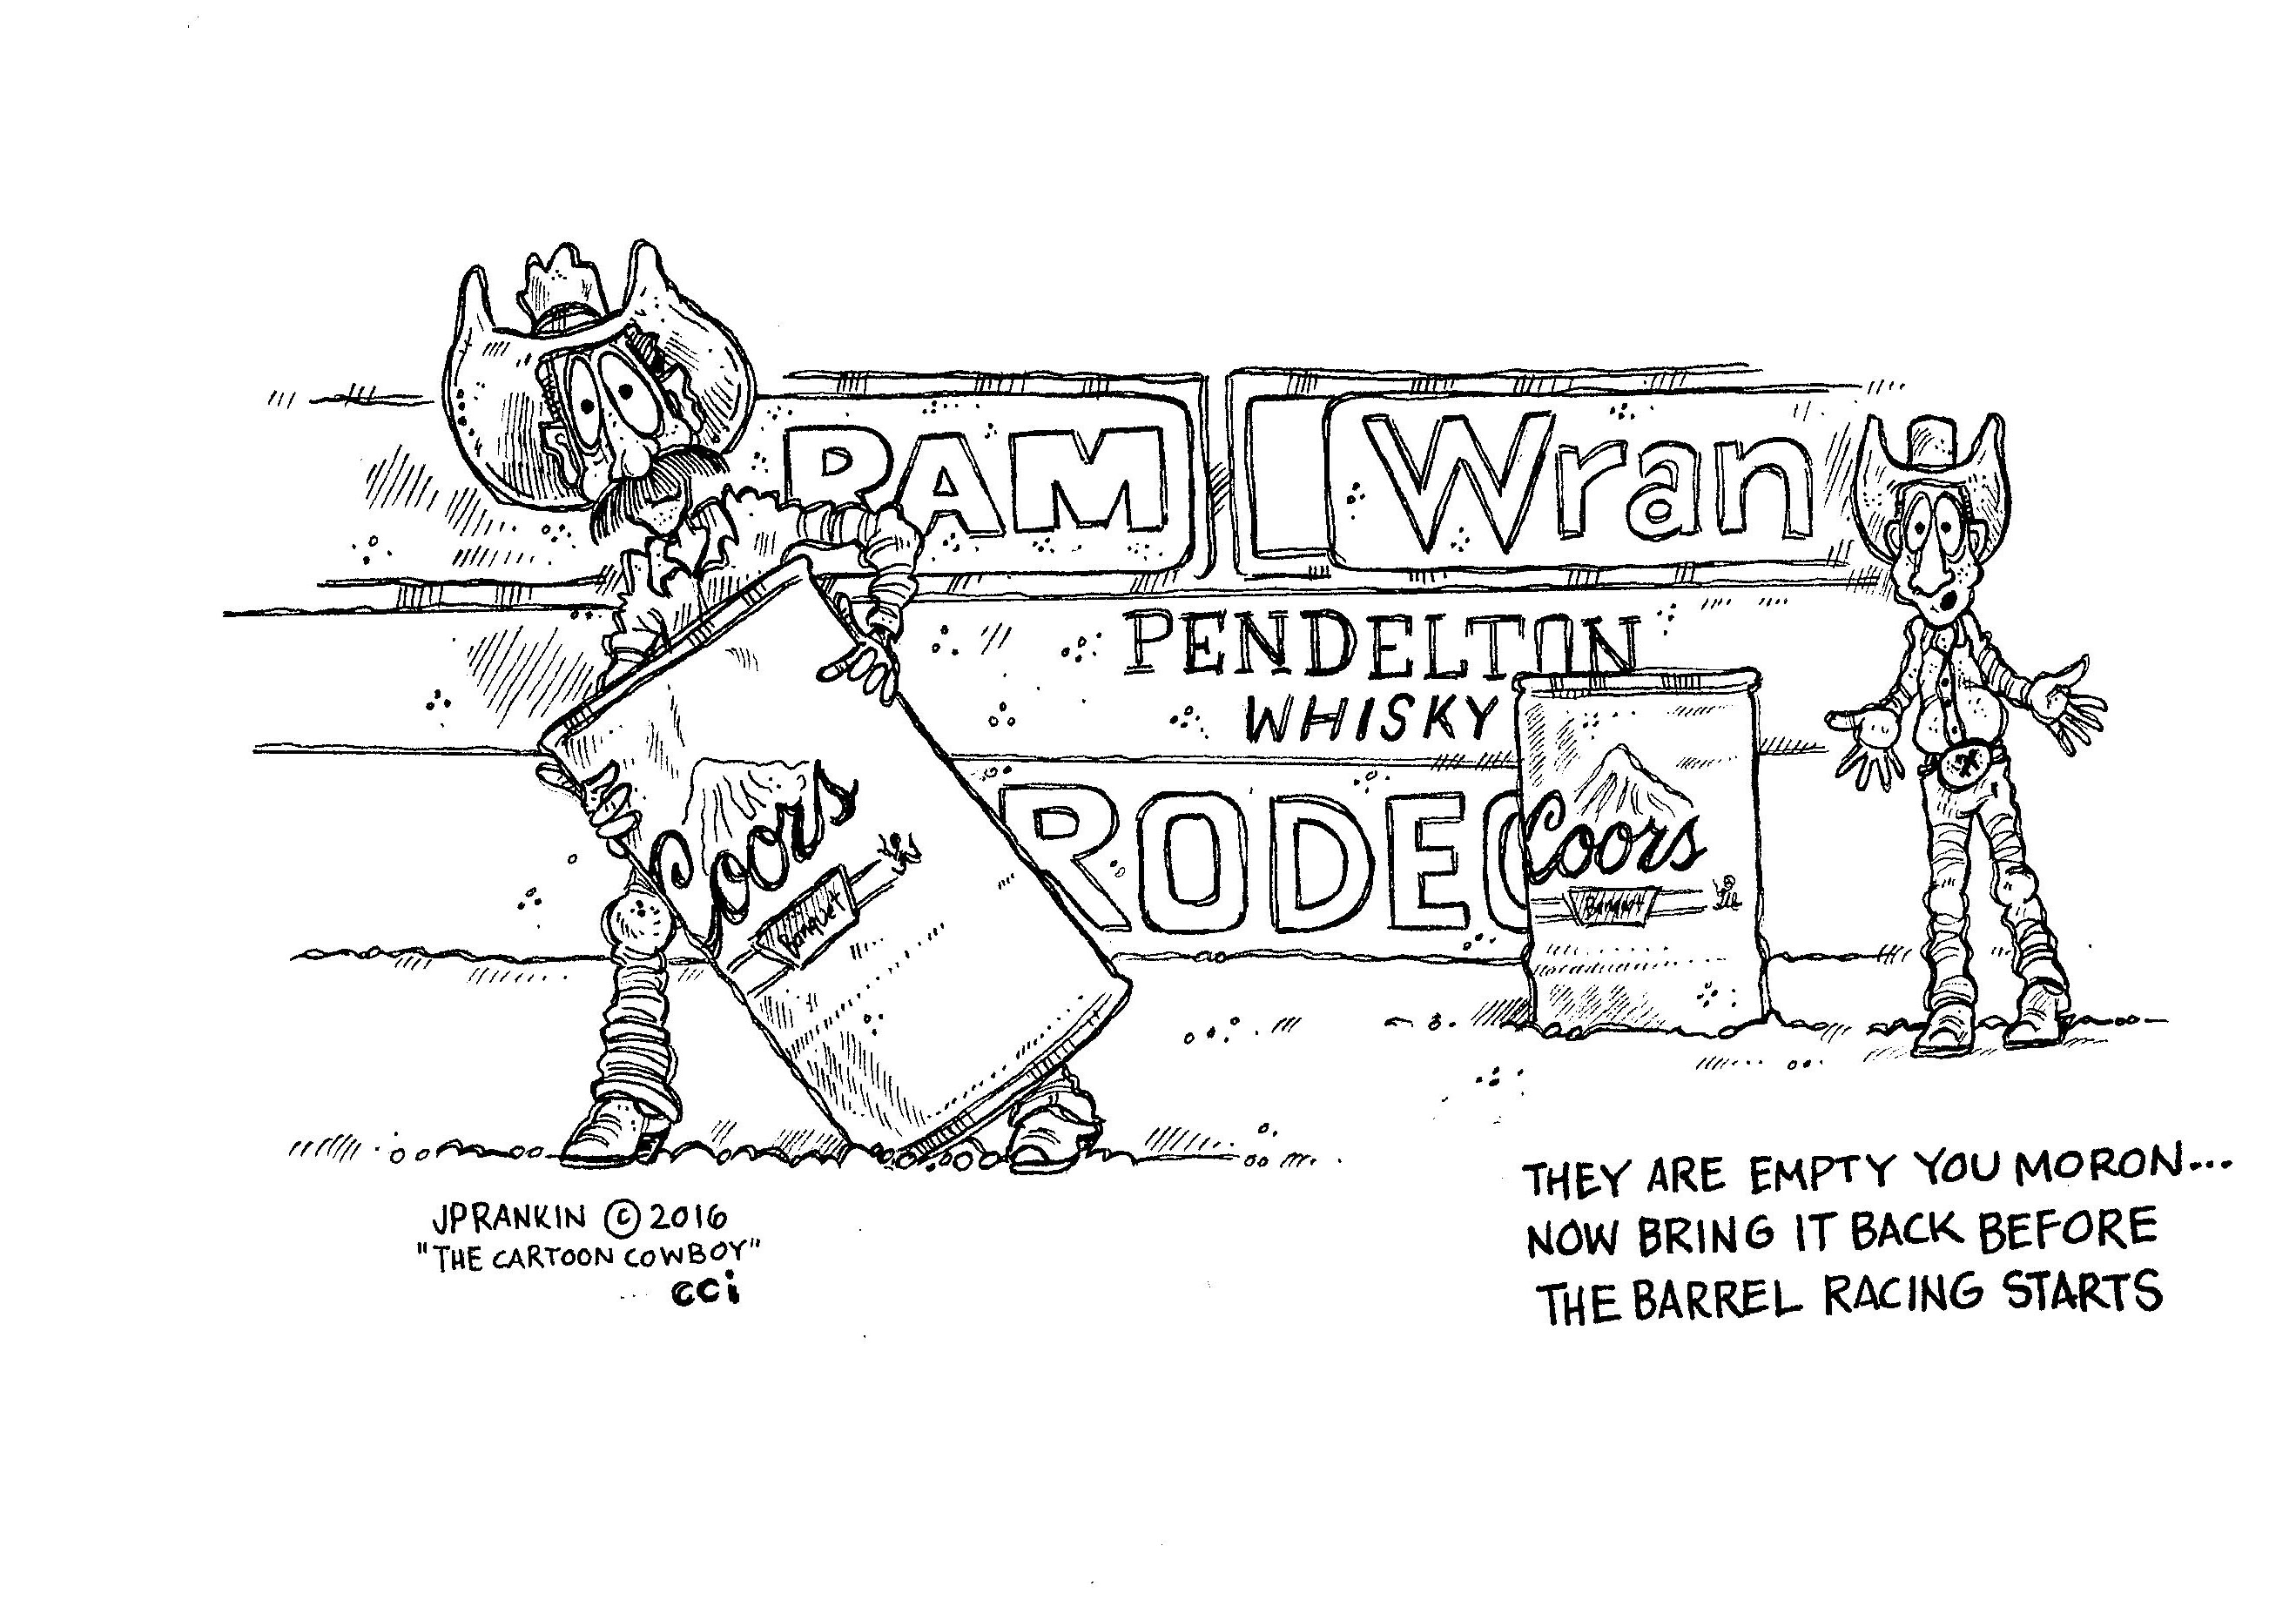 Rodeo Coors